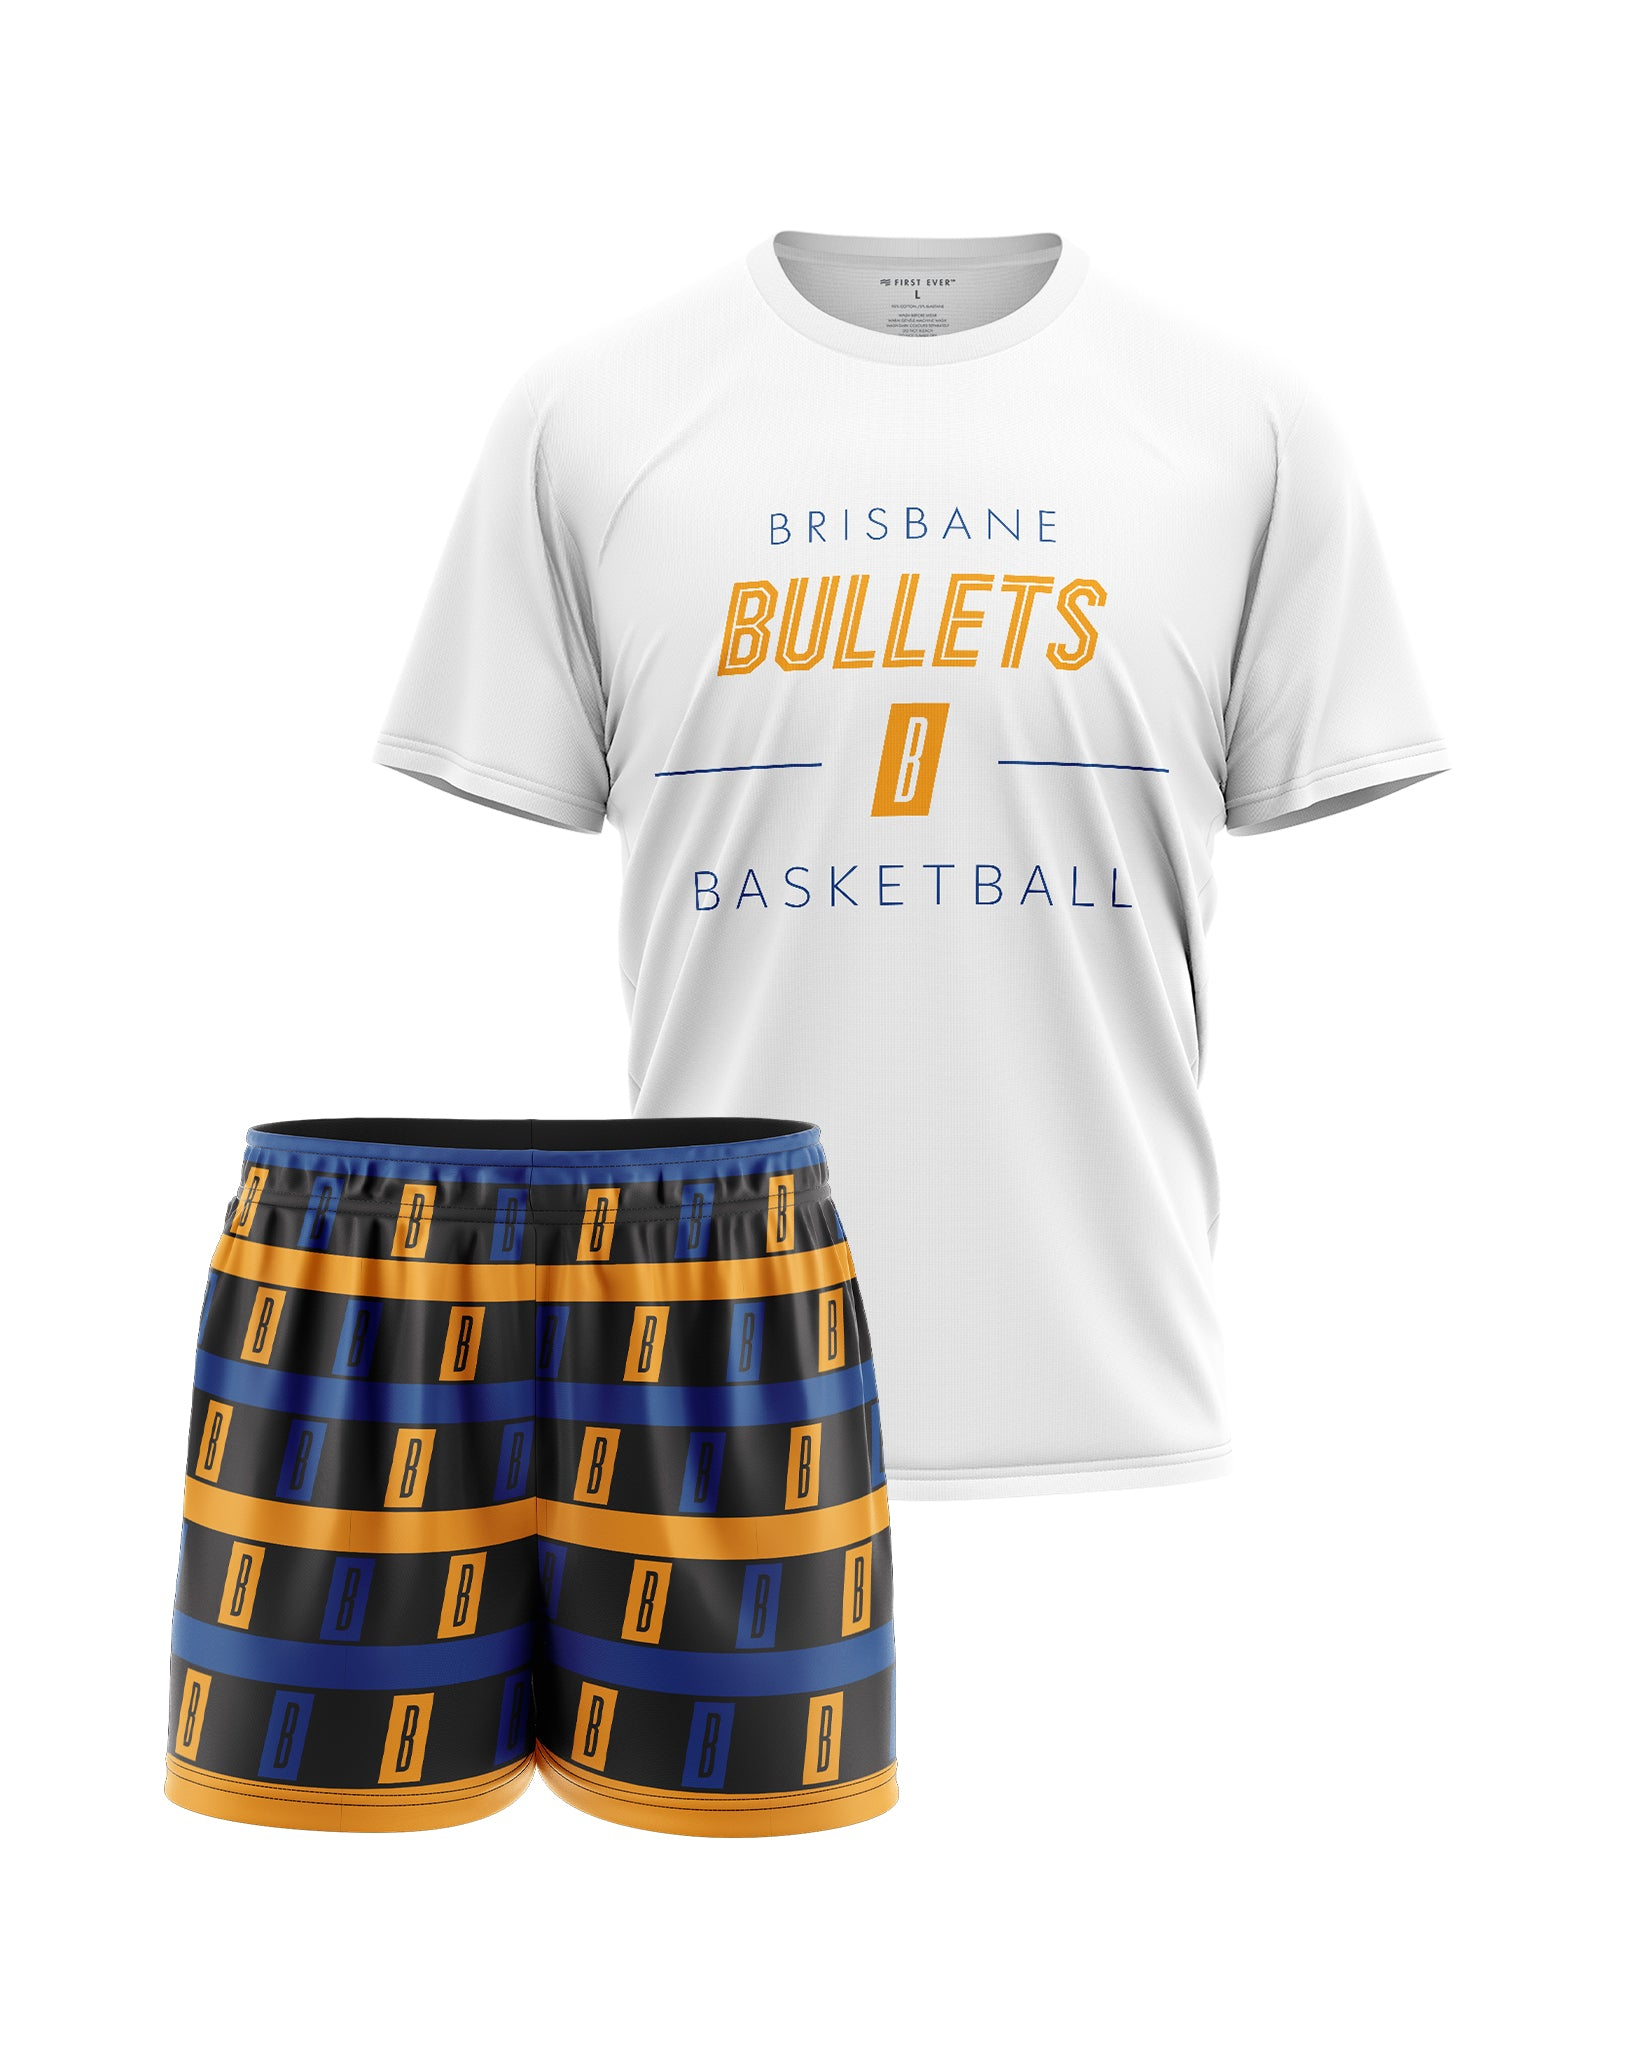 Brisbane Bullets 20/21 Pyjama Set